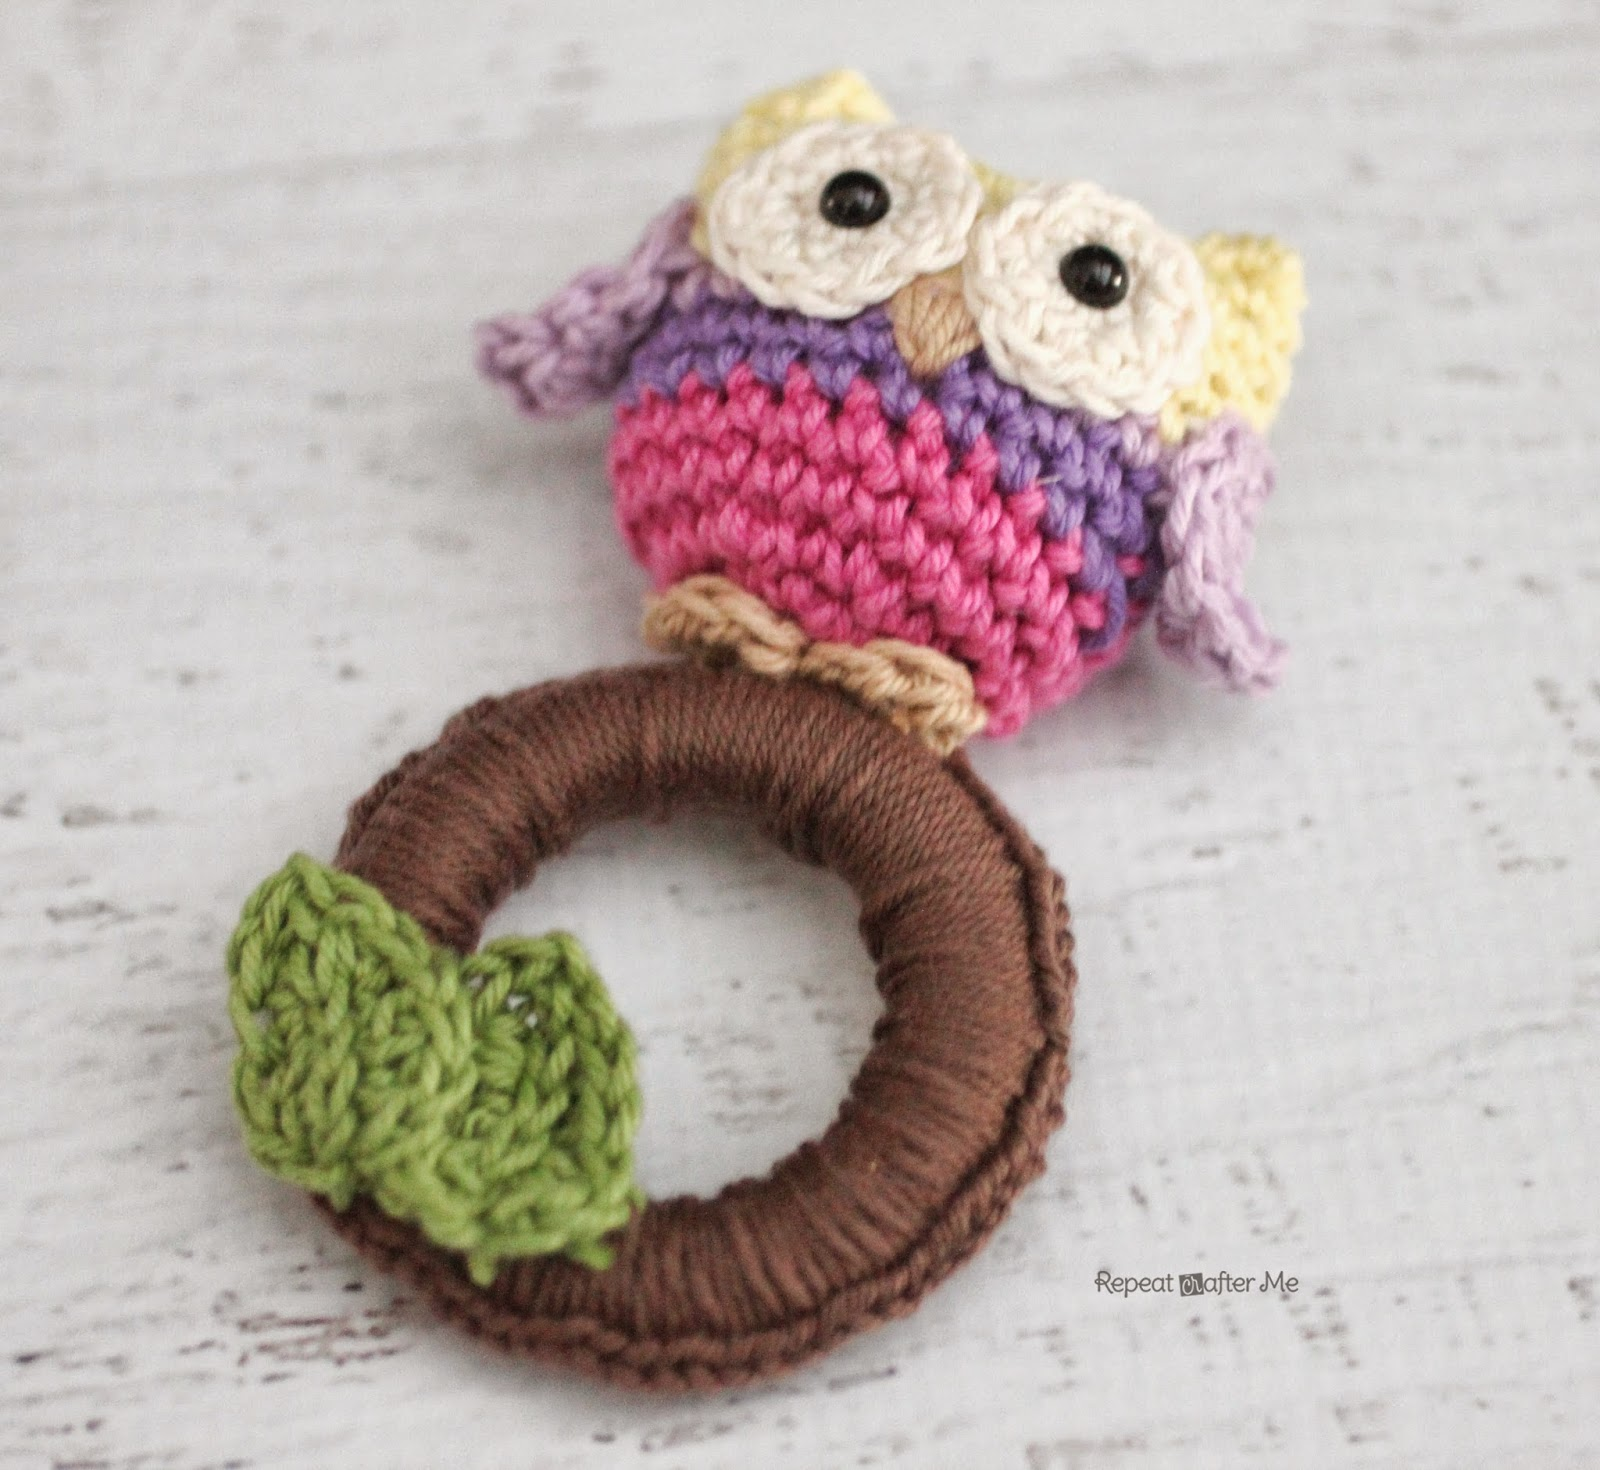 Free Crochet Pattern For Baby Toys : Repeat Crafter Me: Crochet Owl Ring Baby Toy